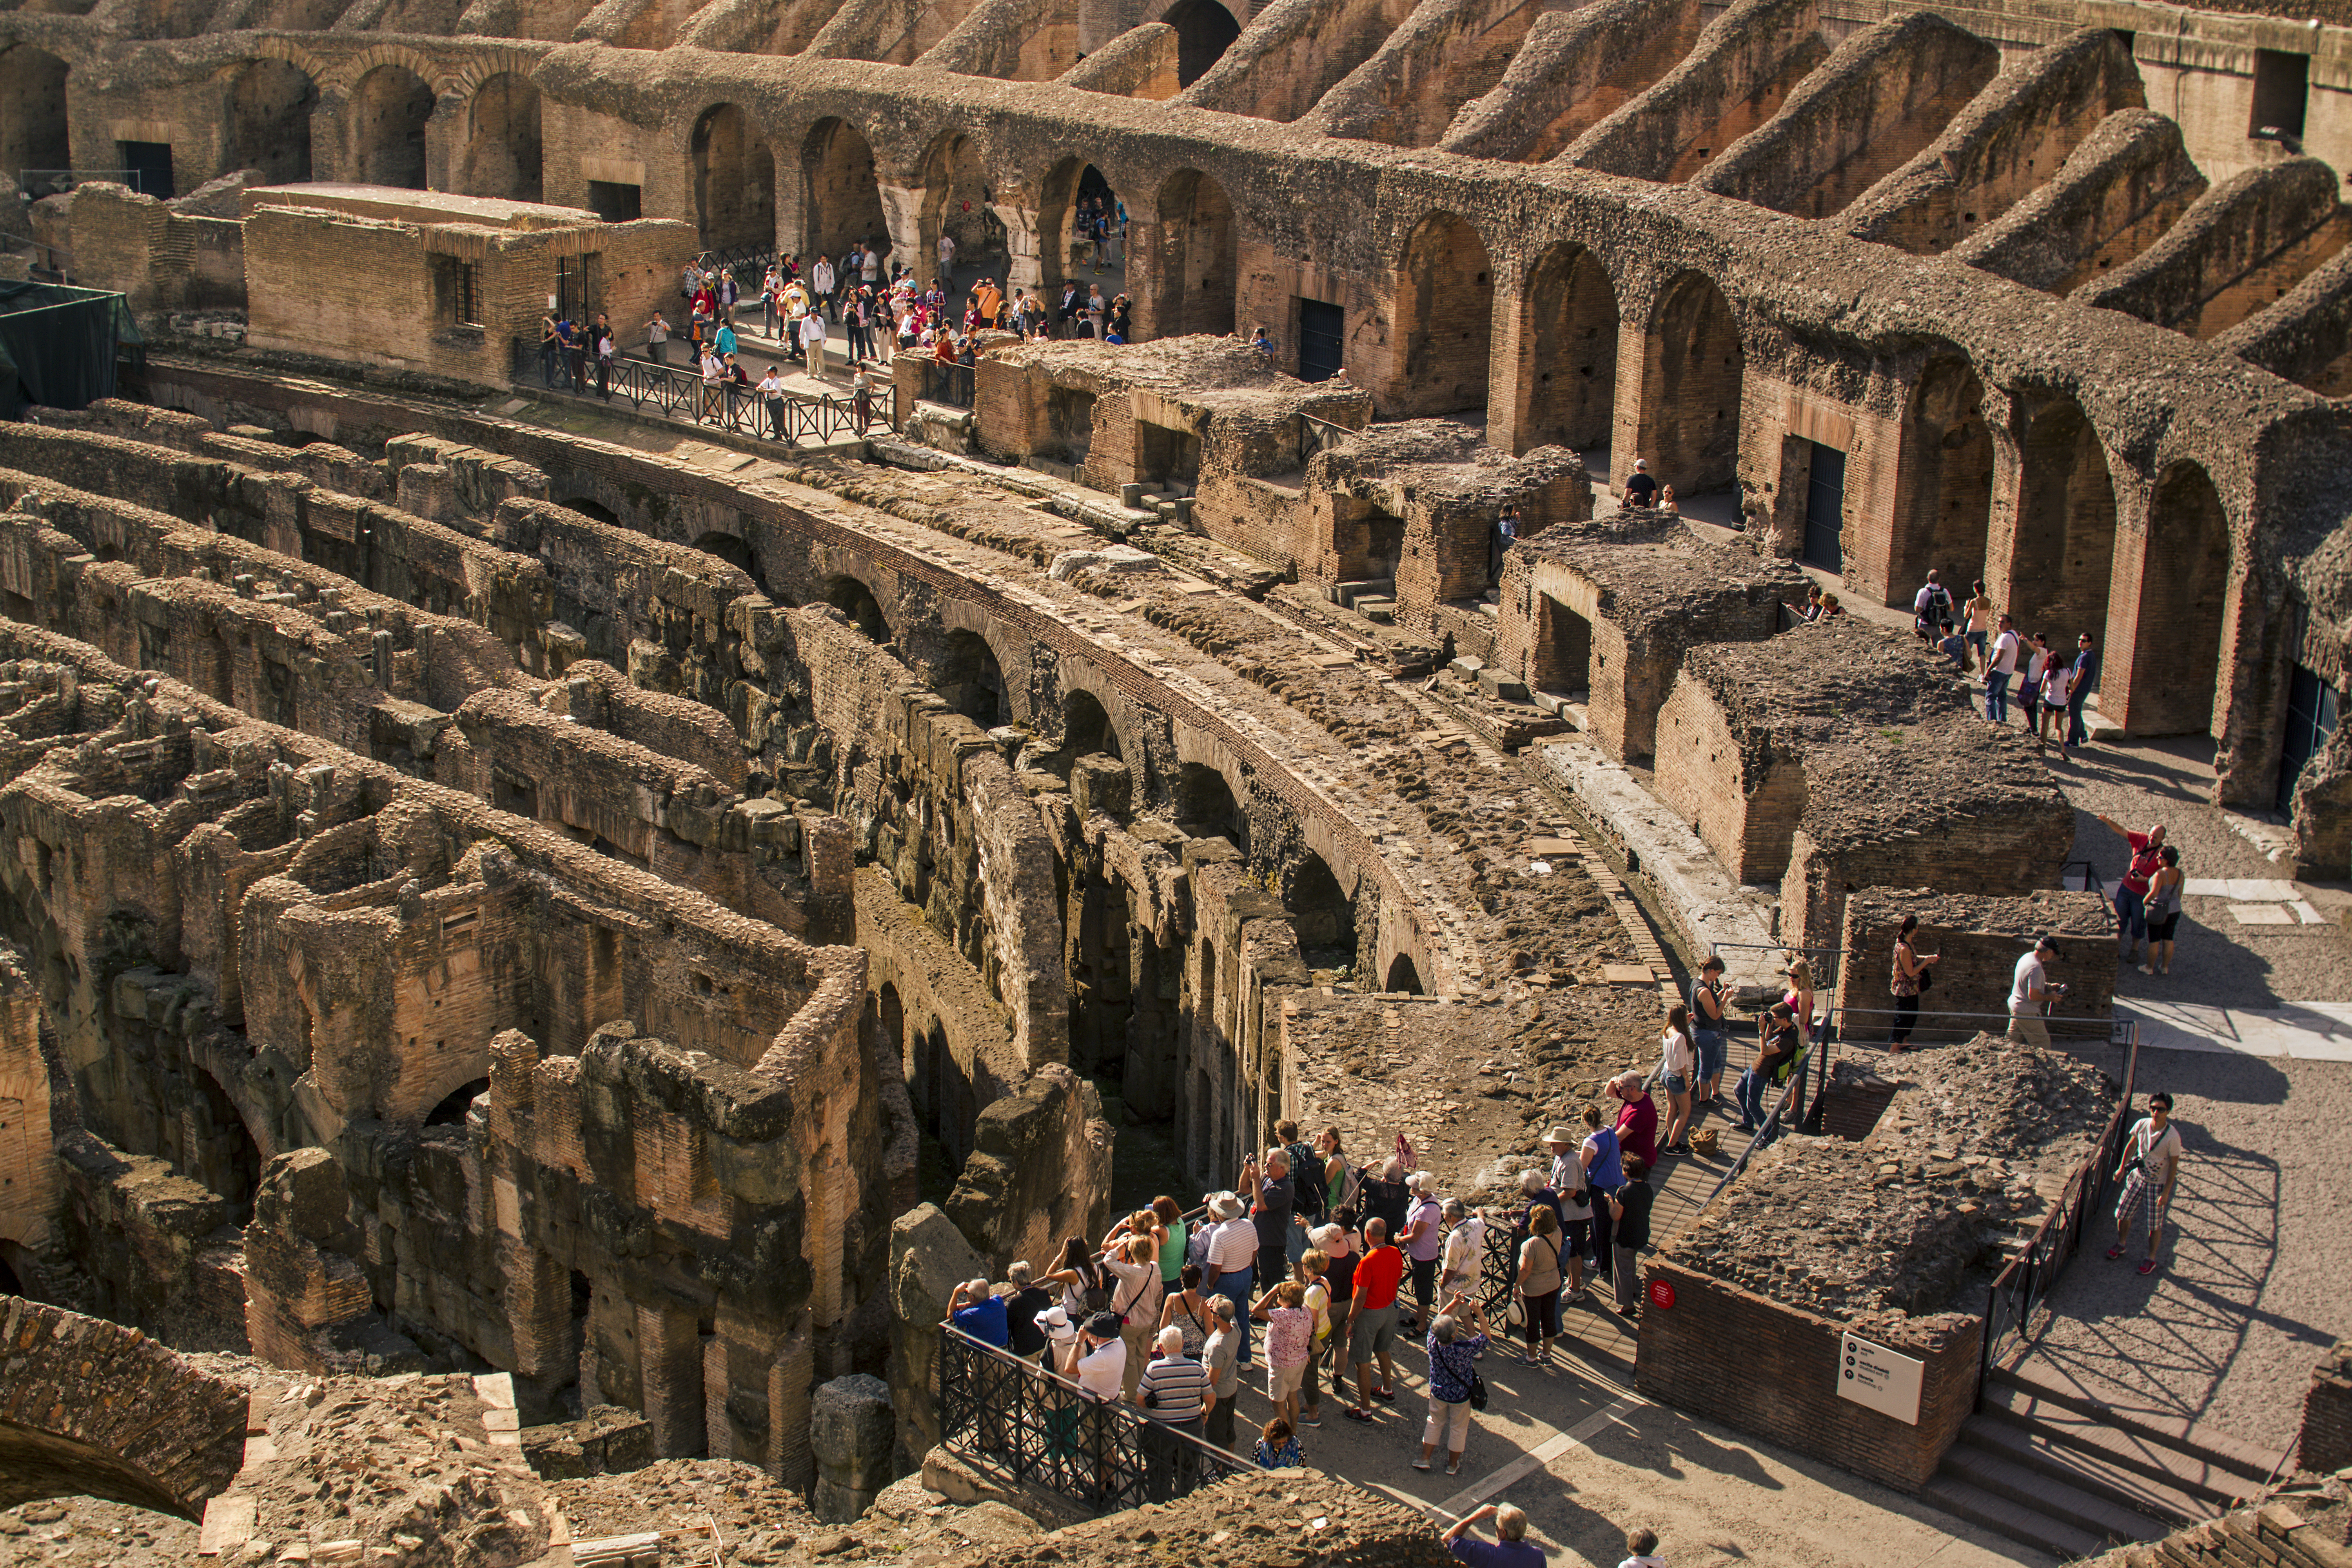 Rows of seats in the Roman Colosseum